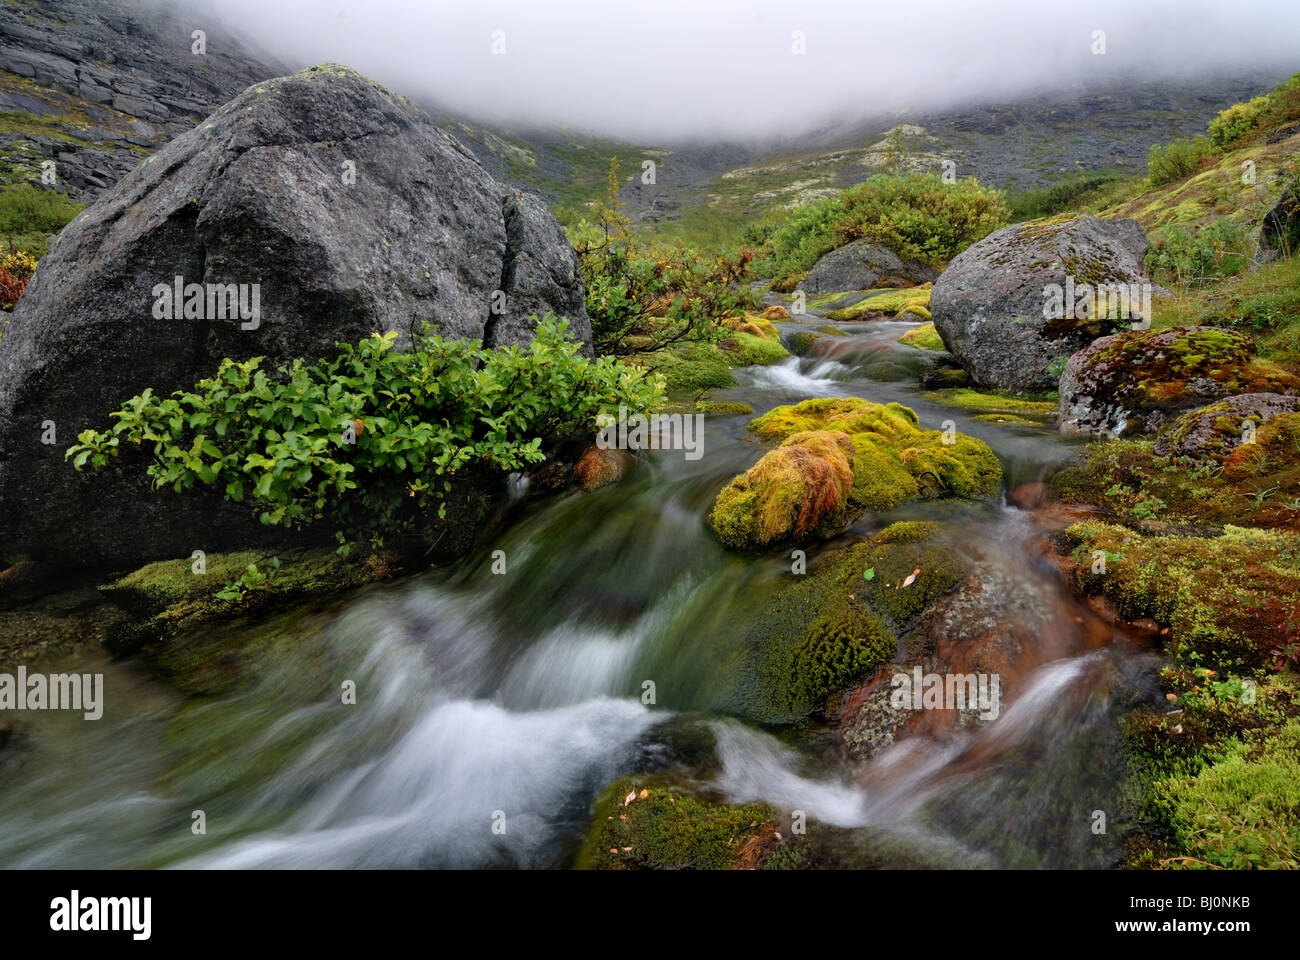 brook in chasnaiok river valley on crimea - Stock Image